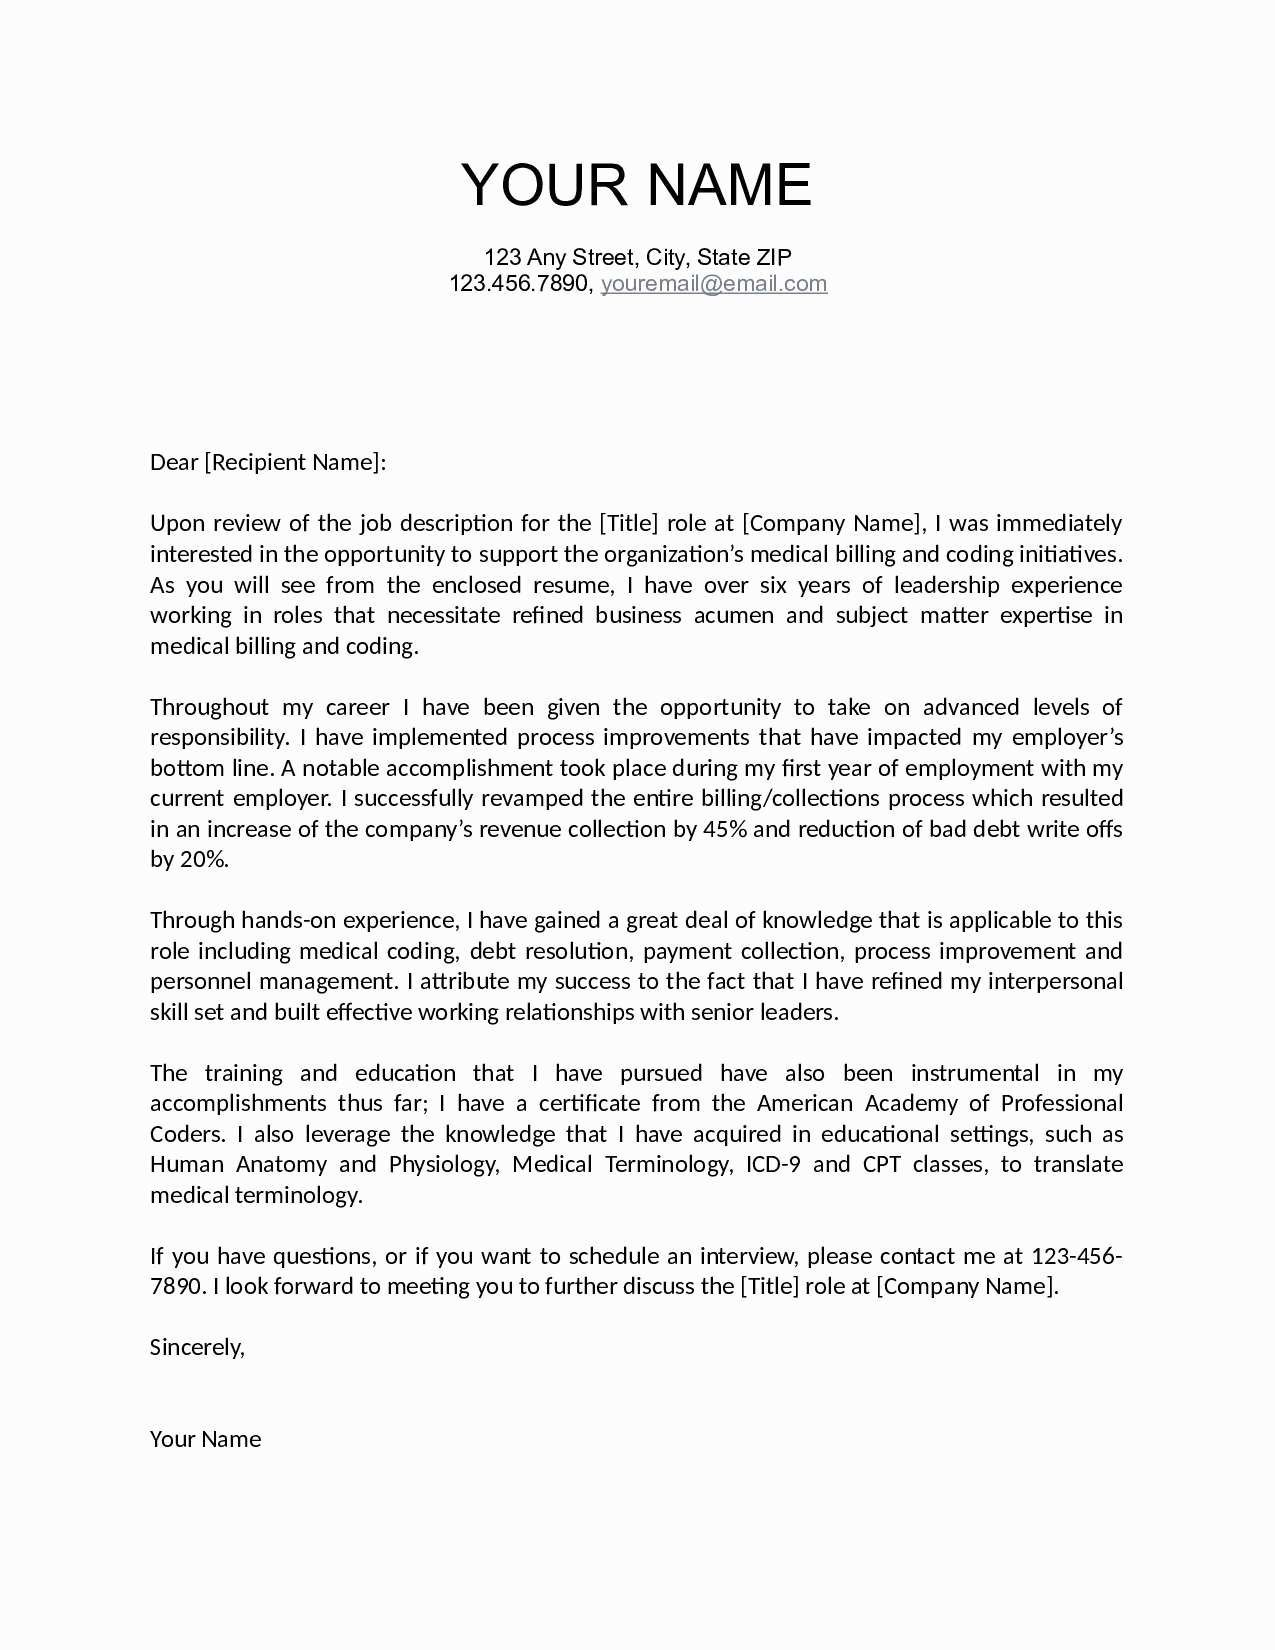 Company Letter Template - What to Write A Covering Letter for A Job